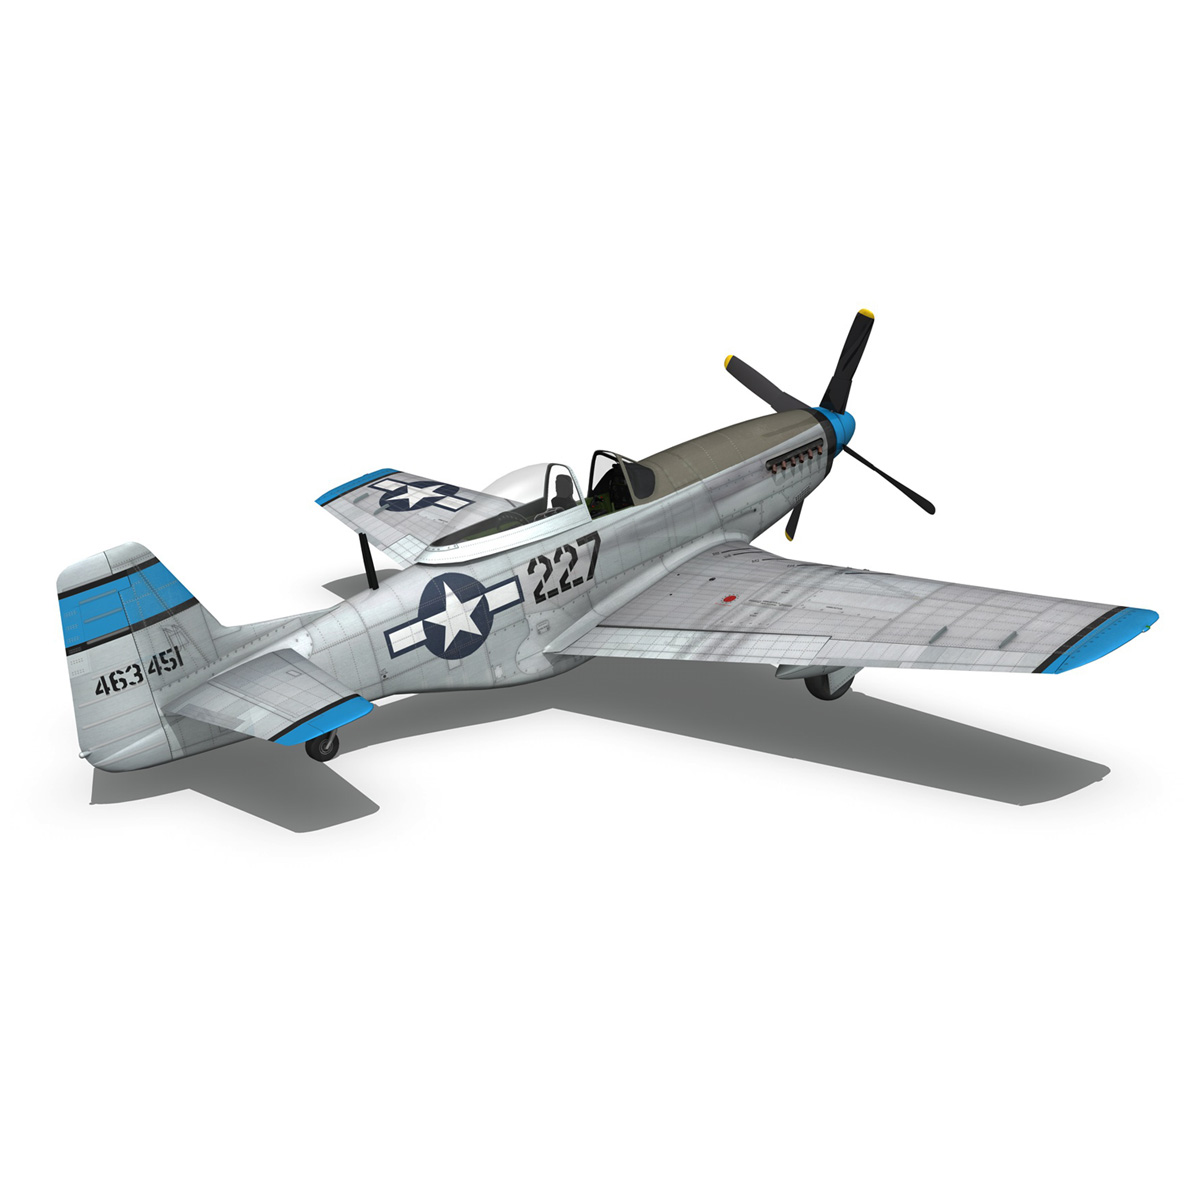 north american p-51d – mustang – mary alyce 3d model 3ds fbx c4d lwo obj 267579